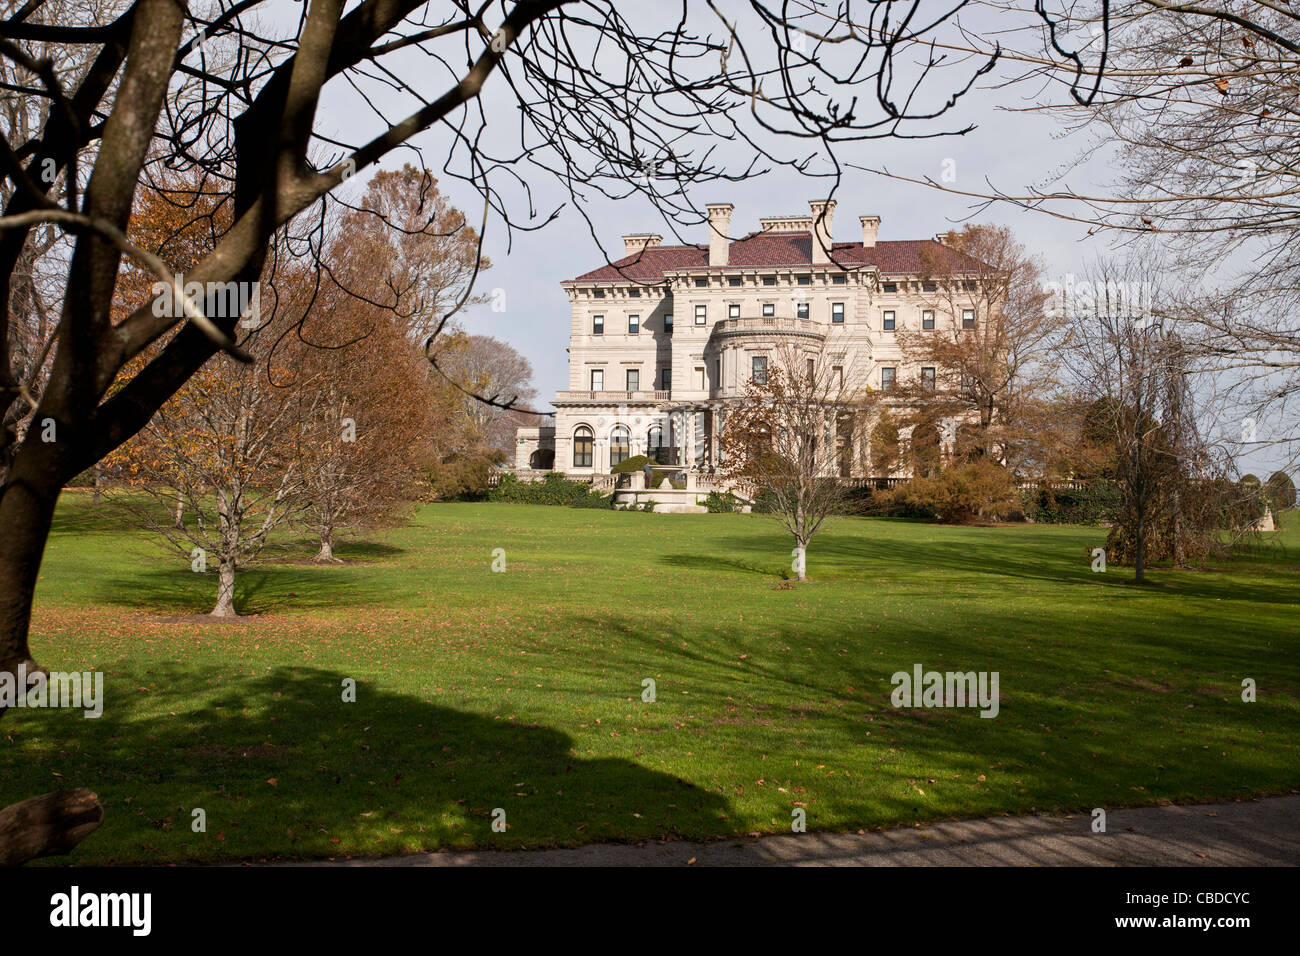 The Breakers, grand house at Newport, Rhode Island. USA - Stock Image